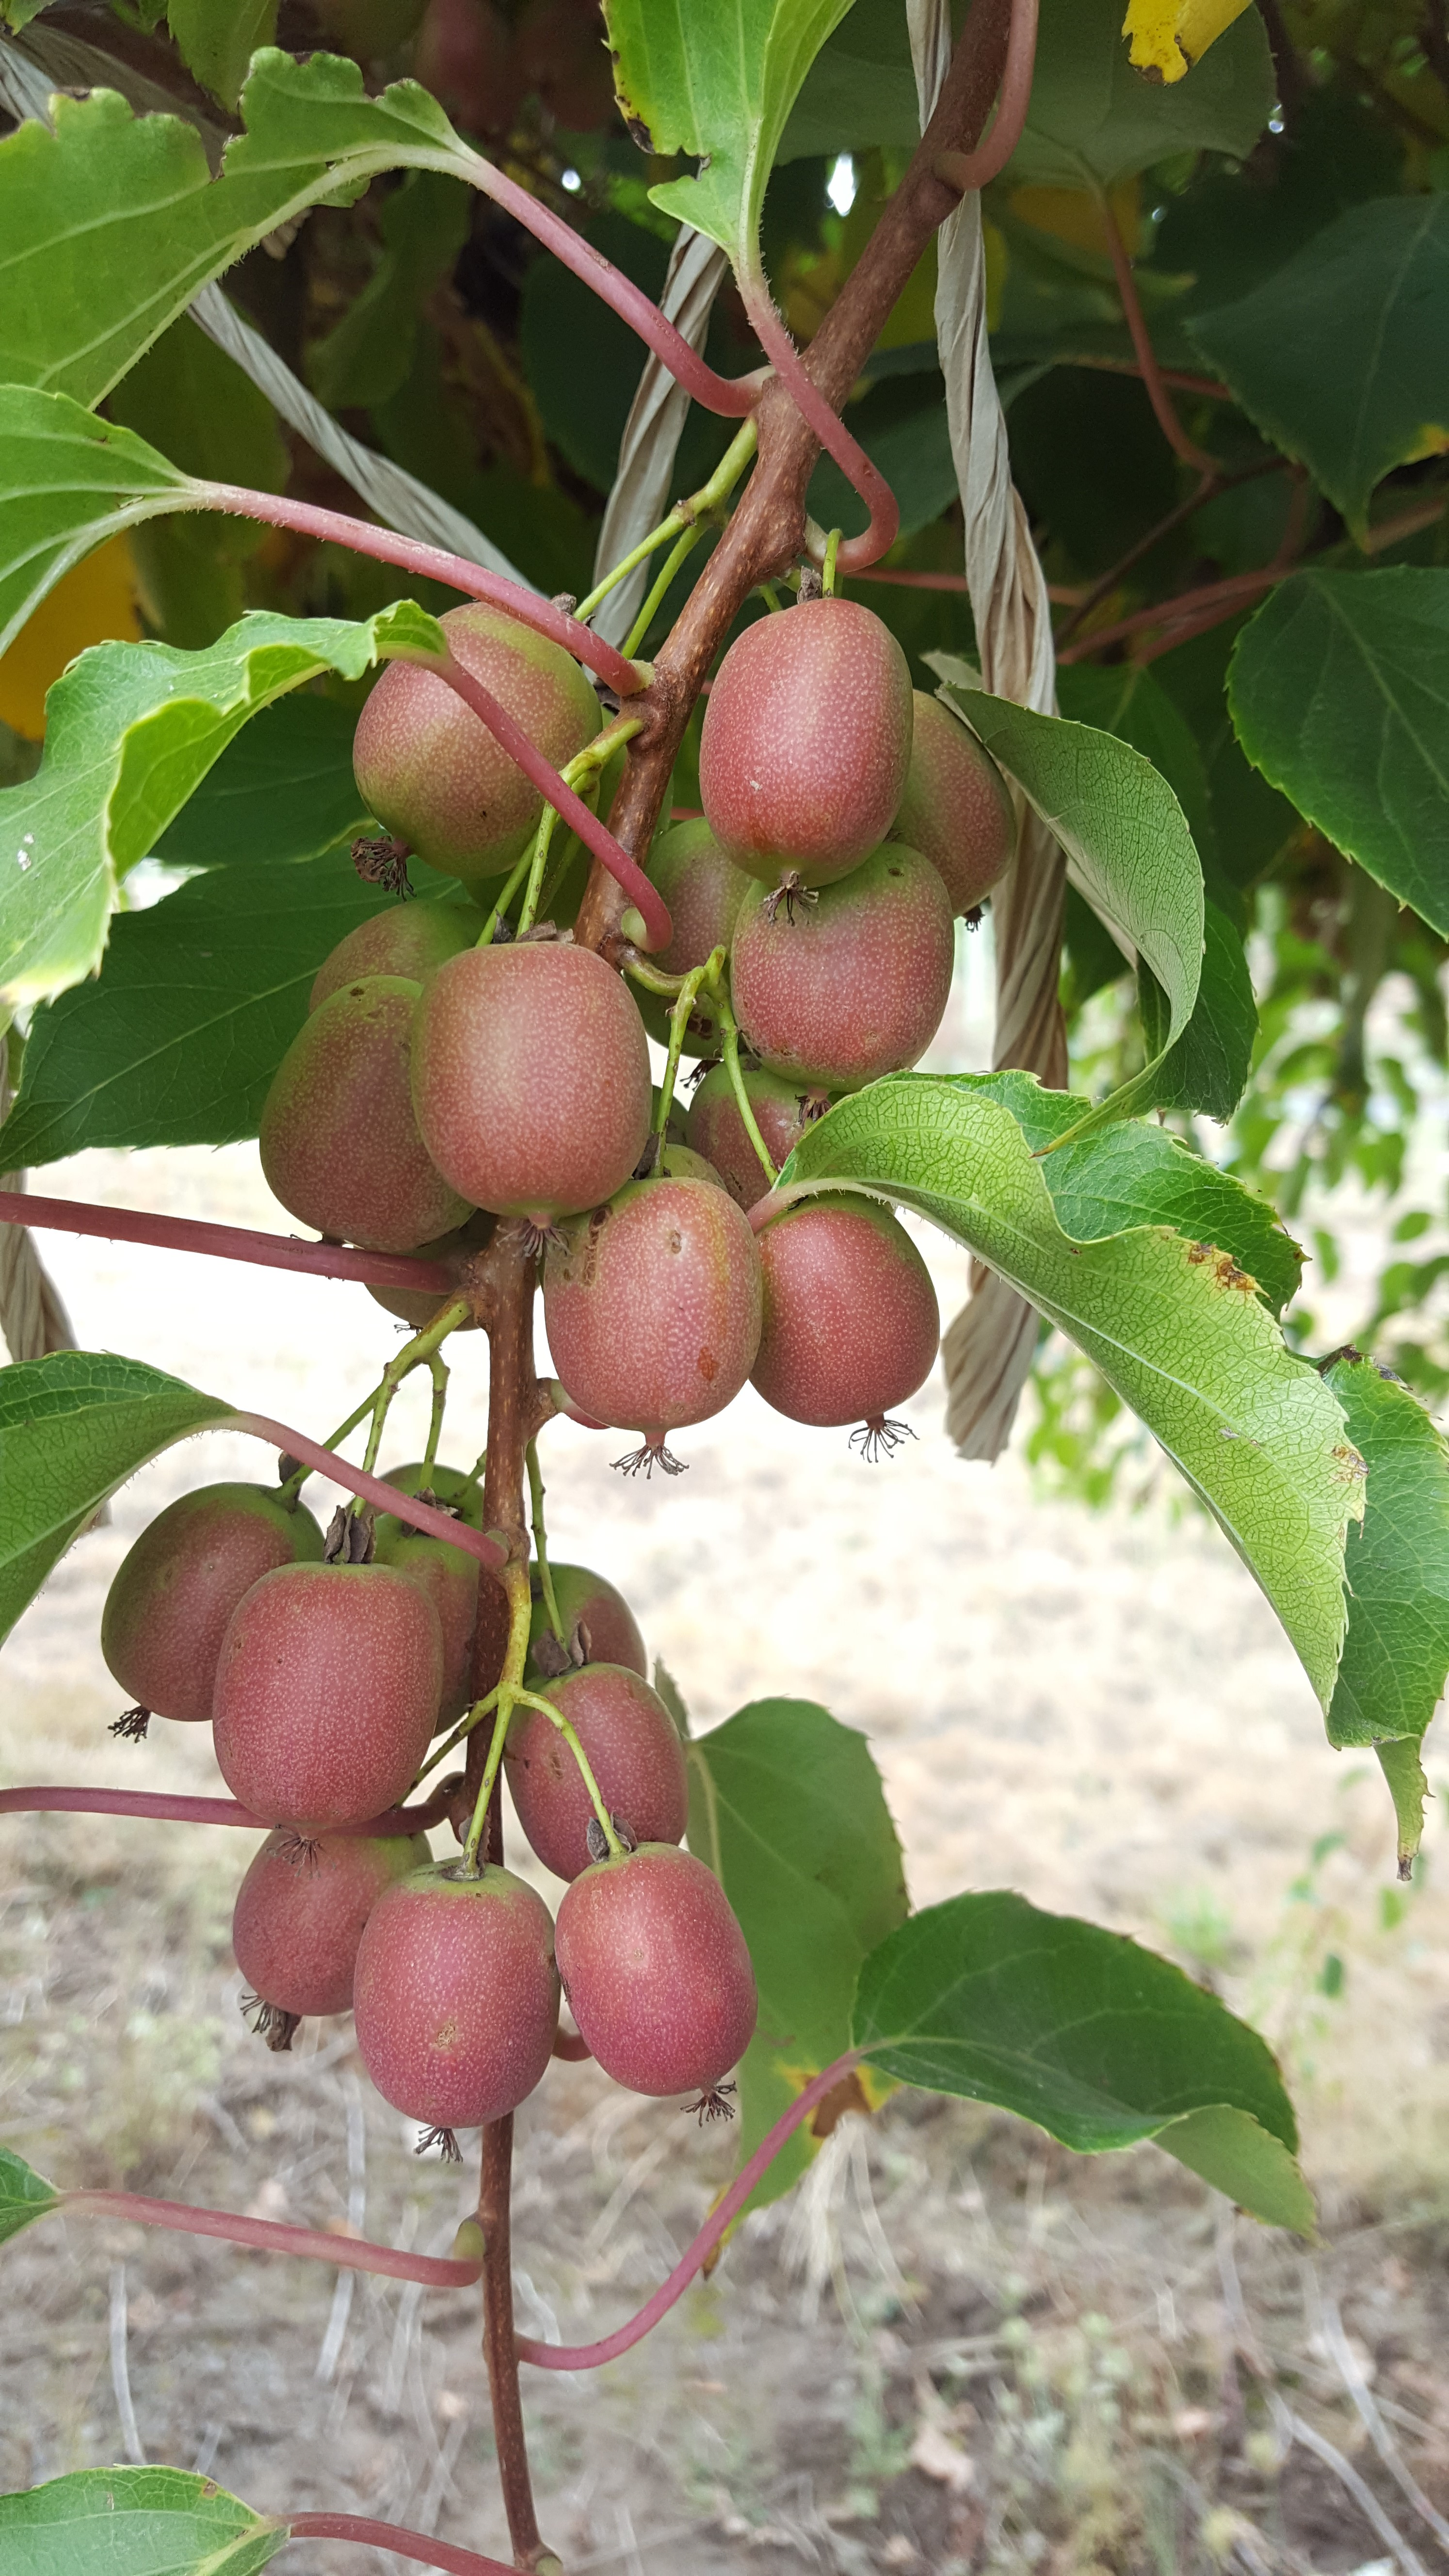 pinkish oval-shaped fruit on vine